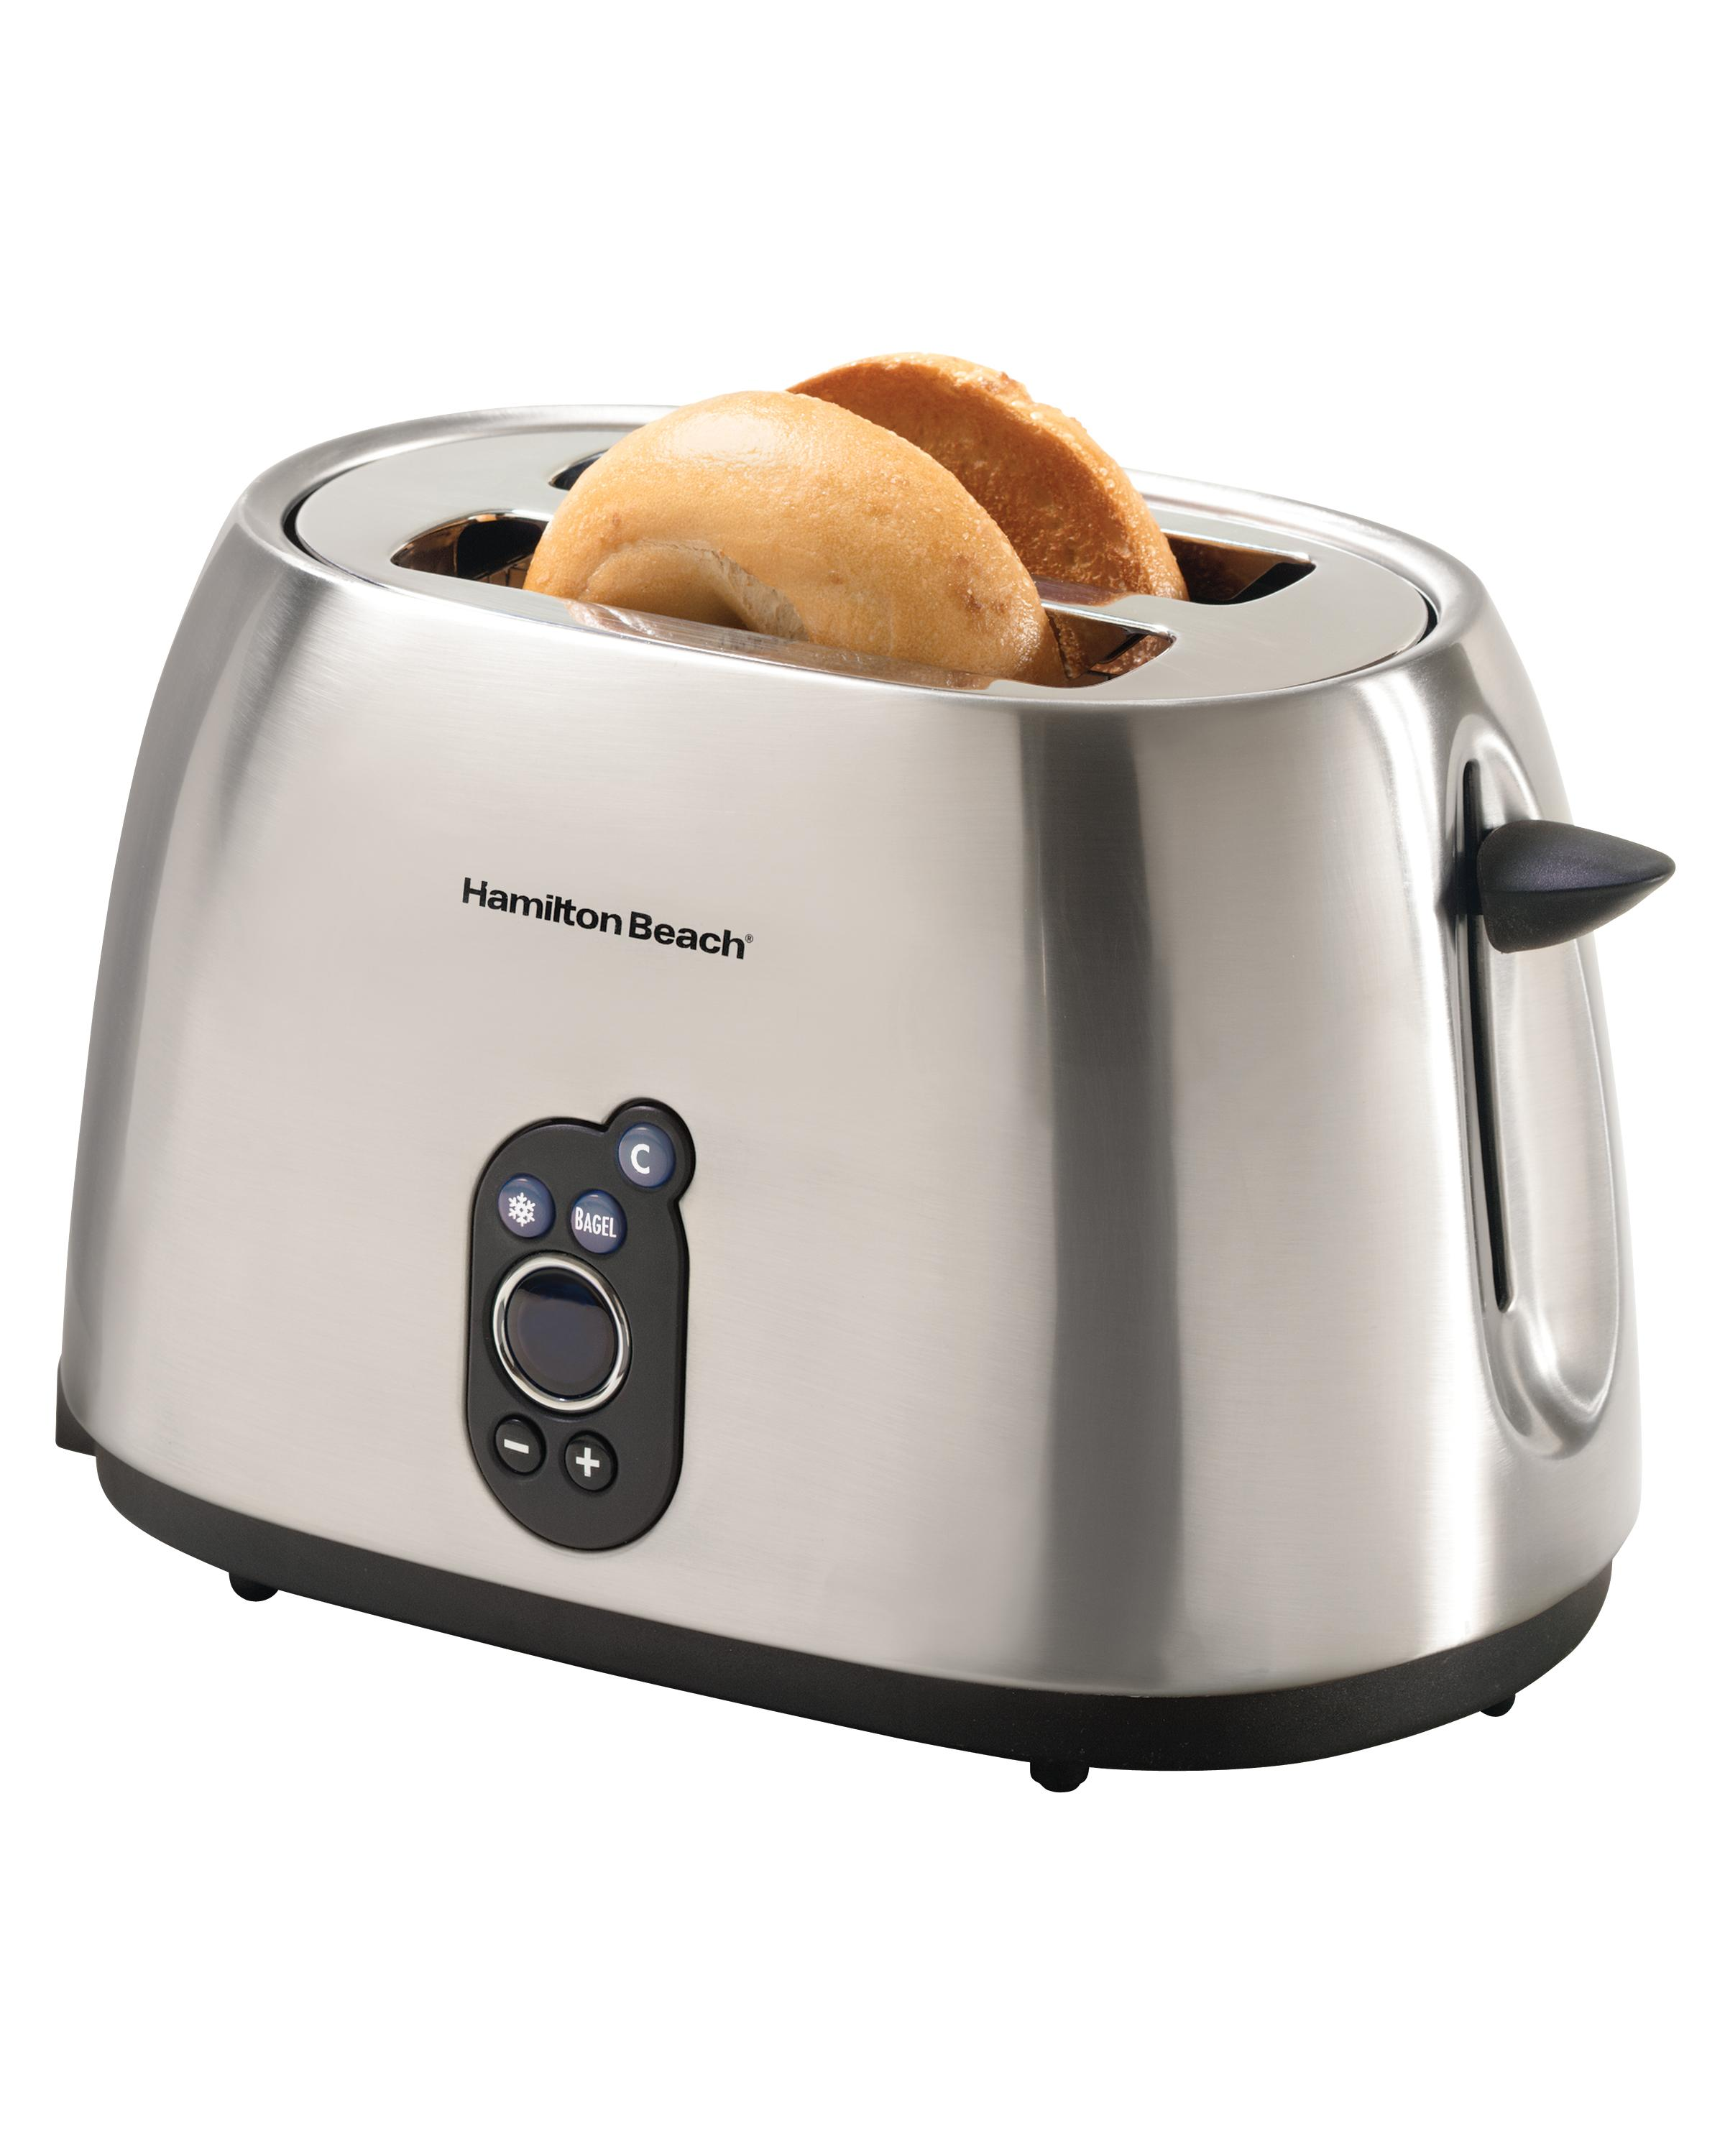 die smart cast with auto intelligent breville toaster lowering slice